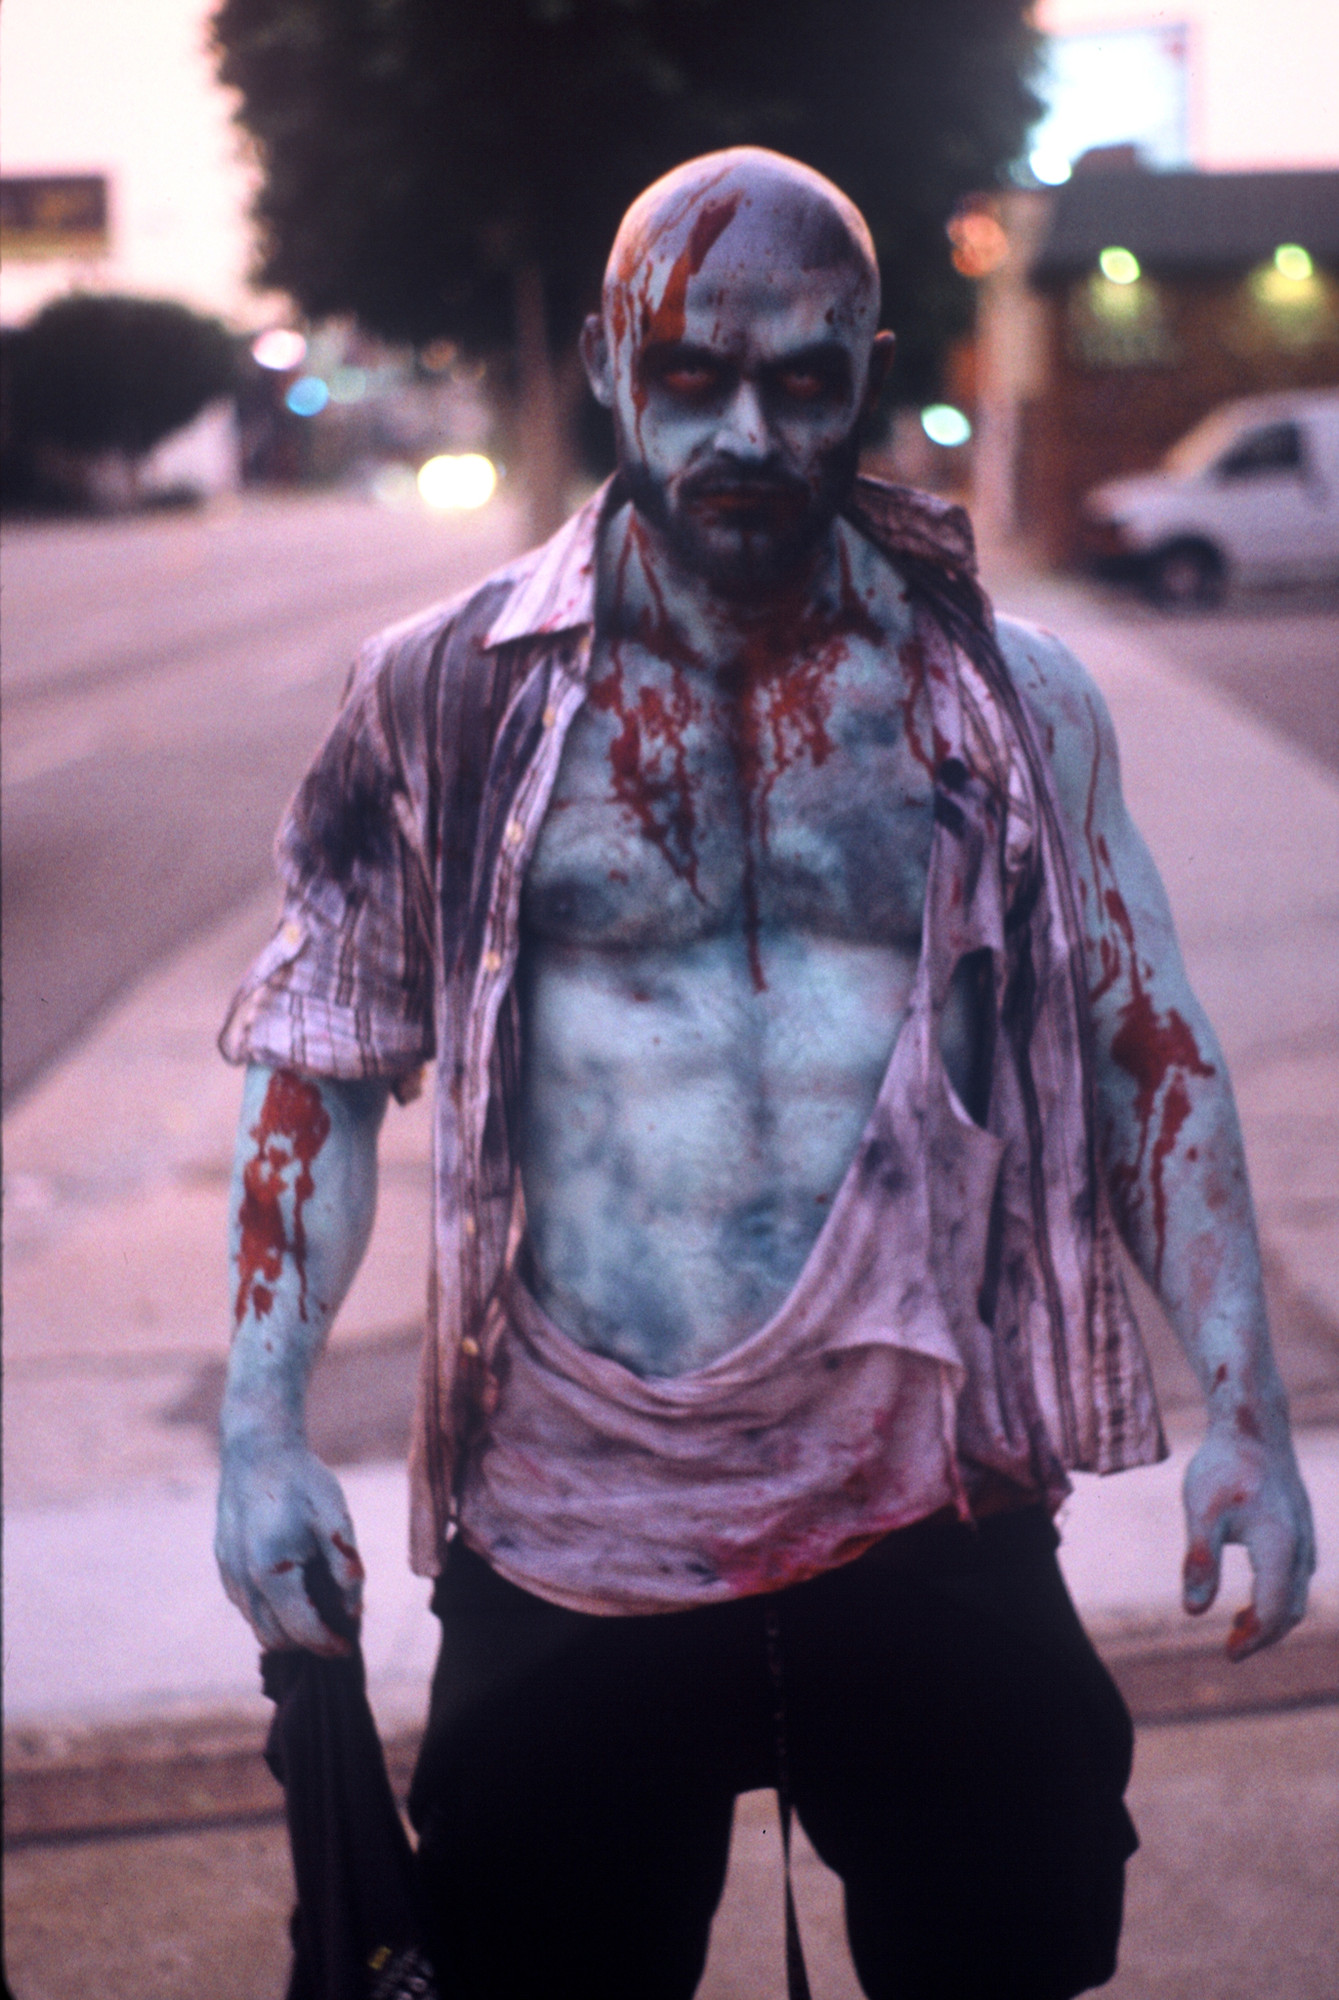 L.A. Zombie. 2010. USA, Germany. Directed by Bruce LaBruce. Courtesy of the filmmaker